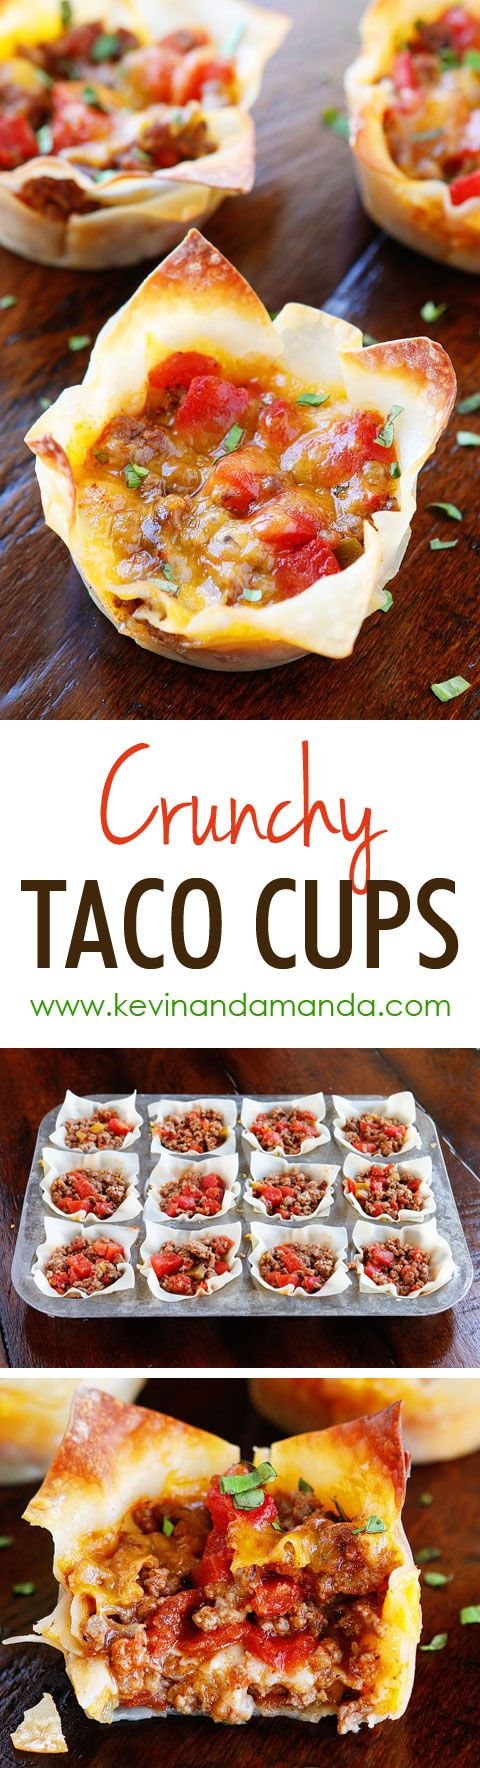 Pinterest Recipes- Weekly Meal Plan - Crunchy Taco Cups frostedeventscom